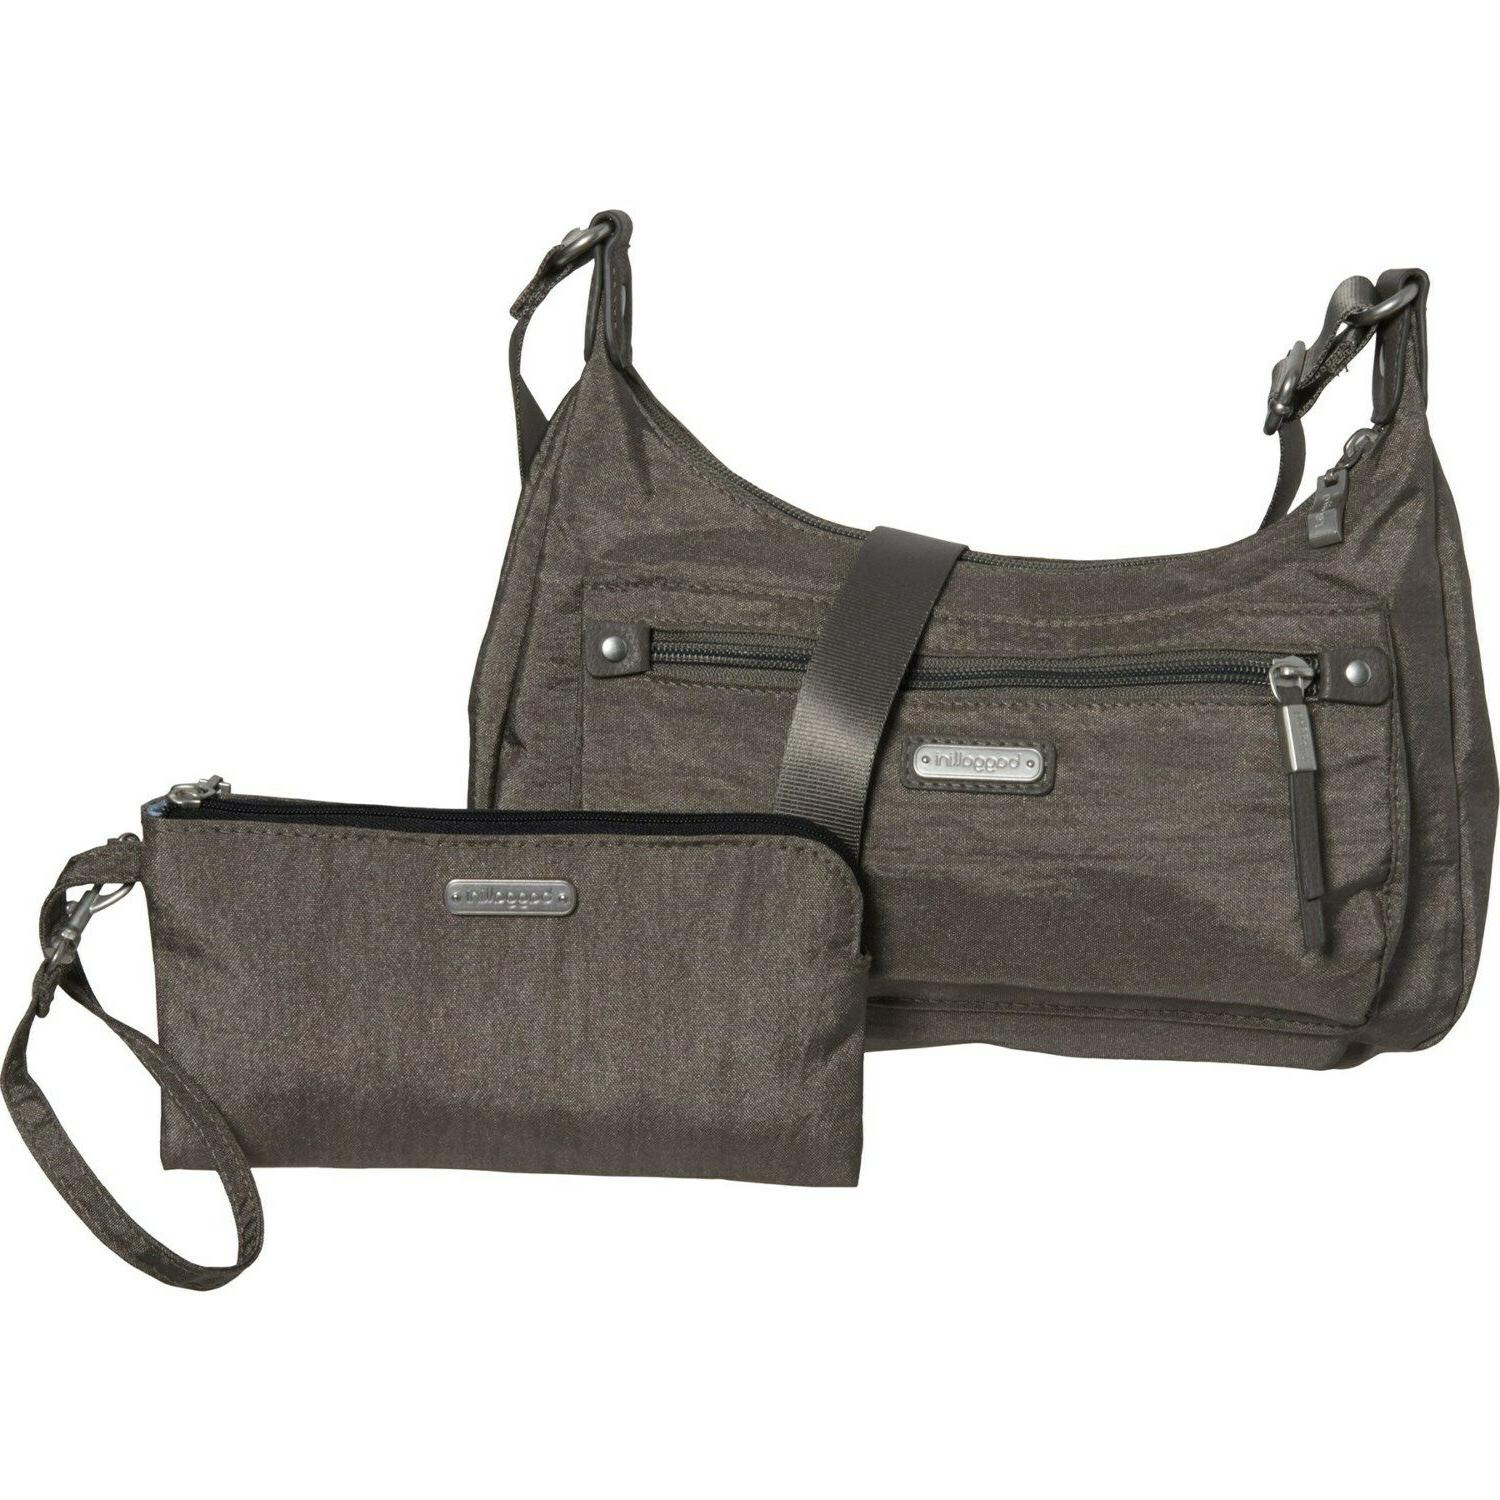 NWT baggallini Silver Out and About Crossbody Bag RFID Black